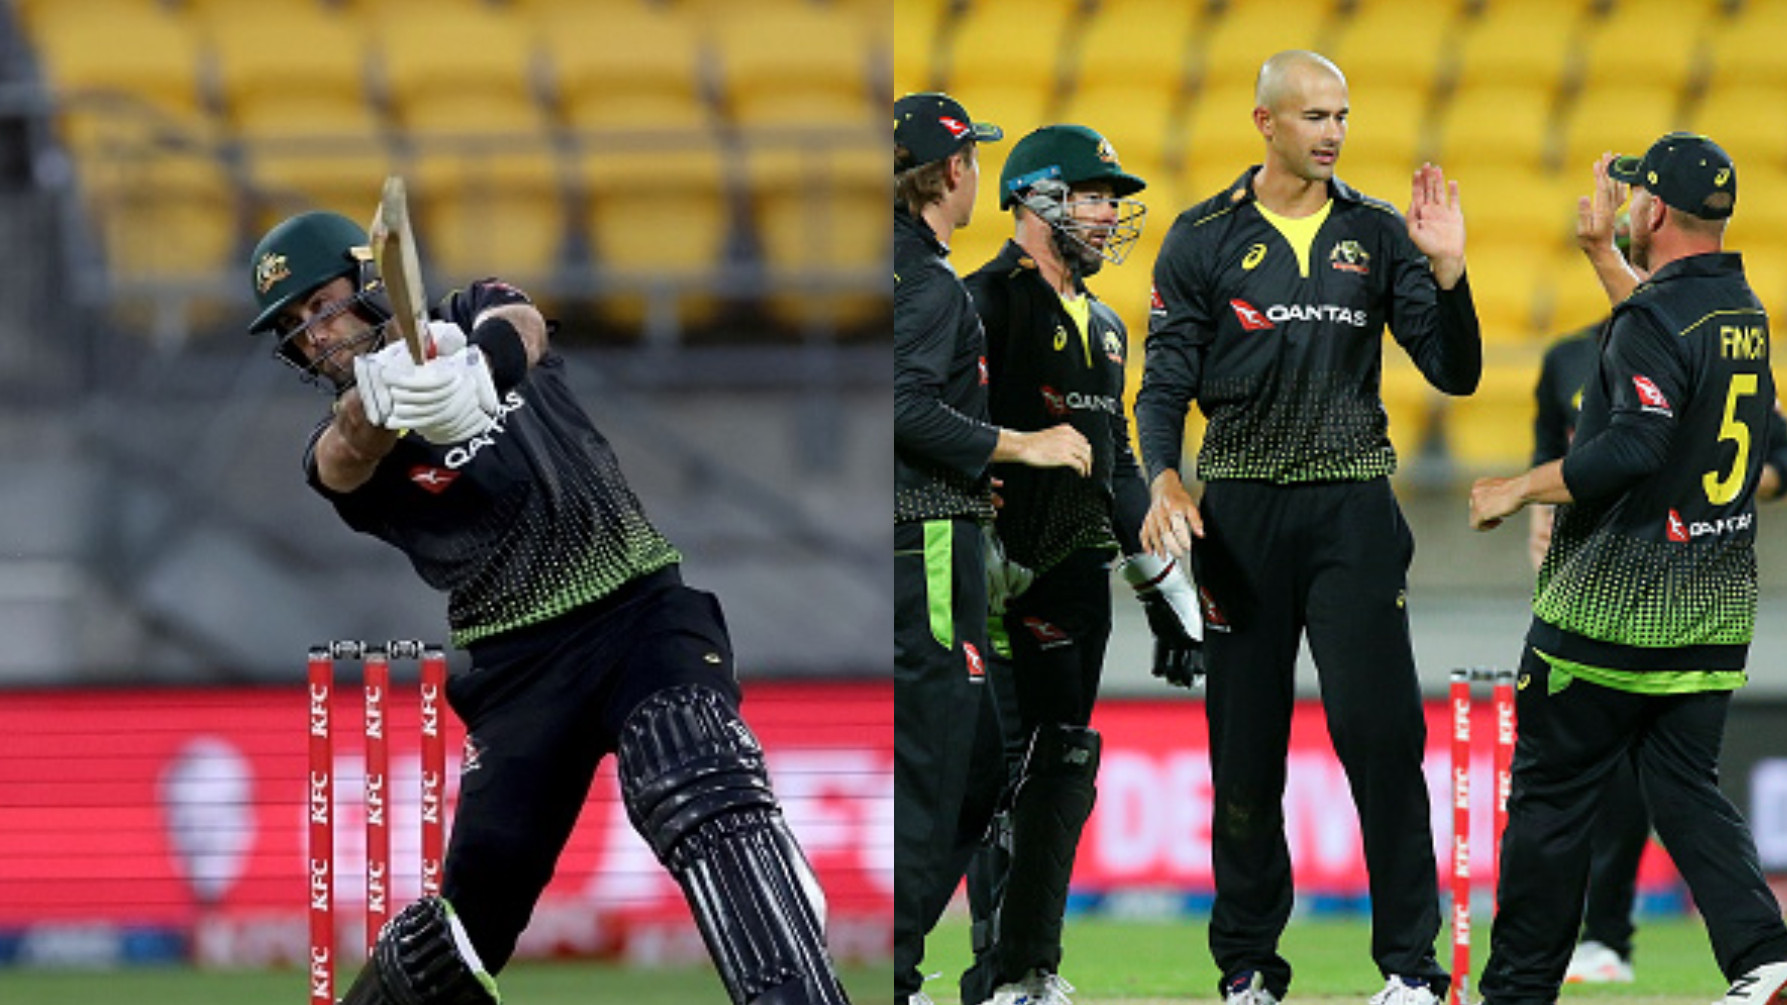 NZ v AUS 2021: Maxwell's 70 and Agar's 6/30 help Australia down New Zealand by 64 runs in 3rd T20I